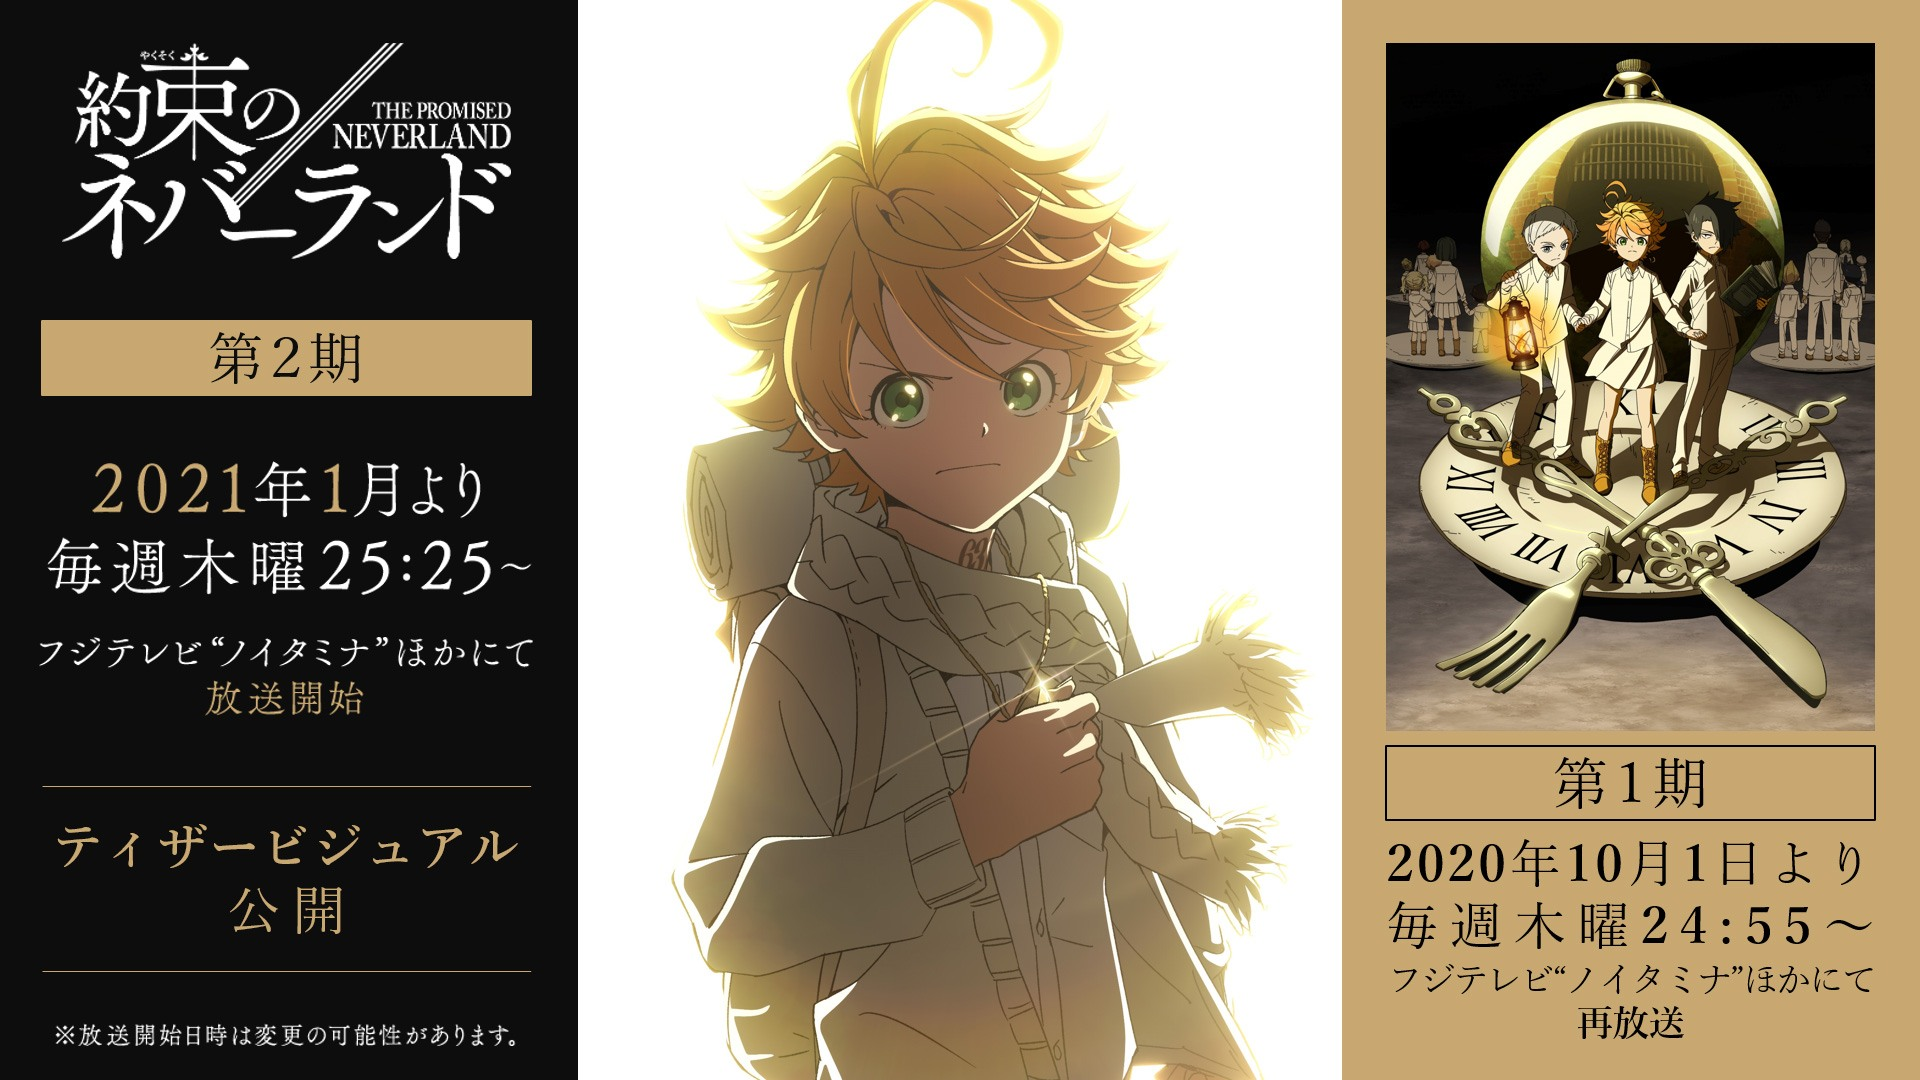 The Promised Neverland Reveals New Key Visuals for Two Upcoming Events!